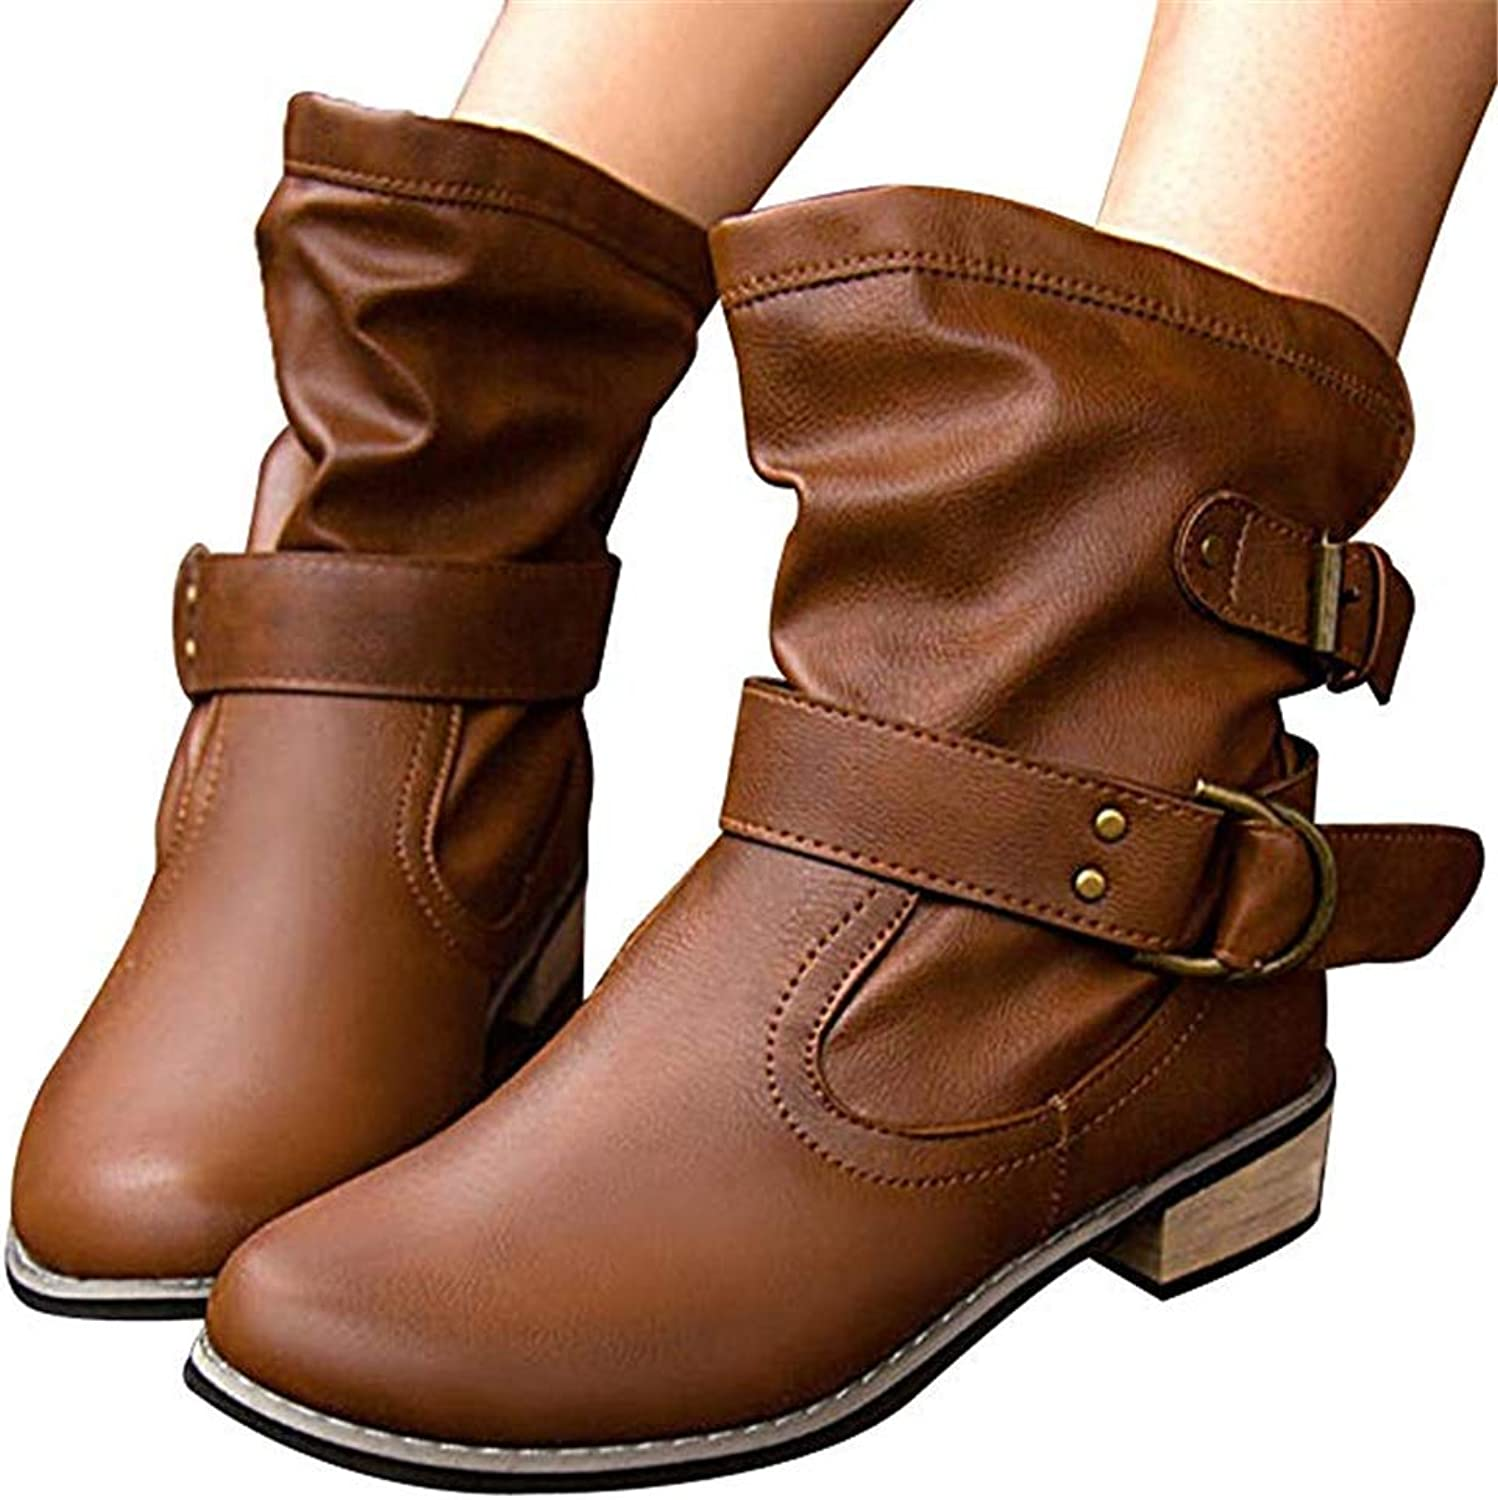 Women's Leather Strappy Wide Flat Heel Mid-Calf Round Toe Casual Short Boot